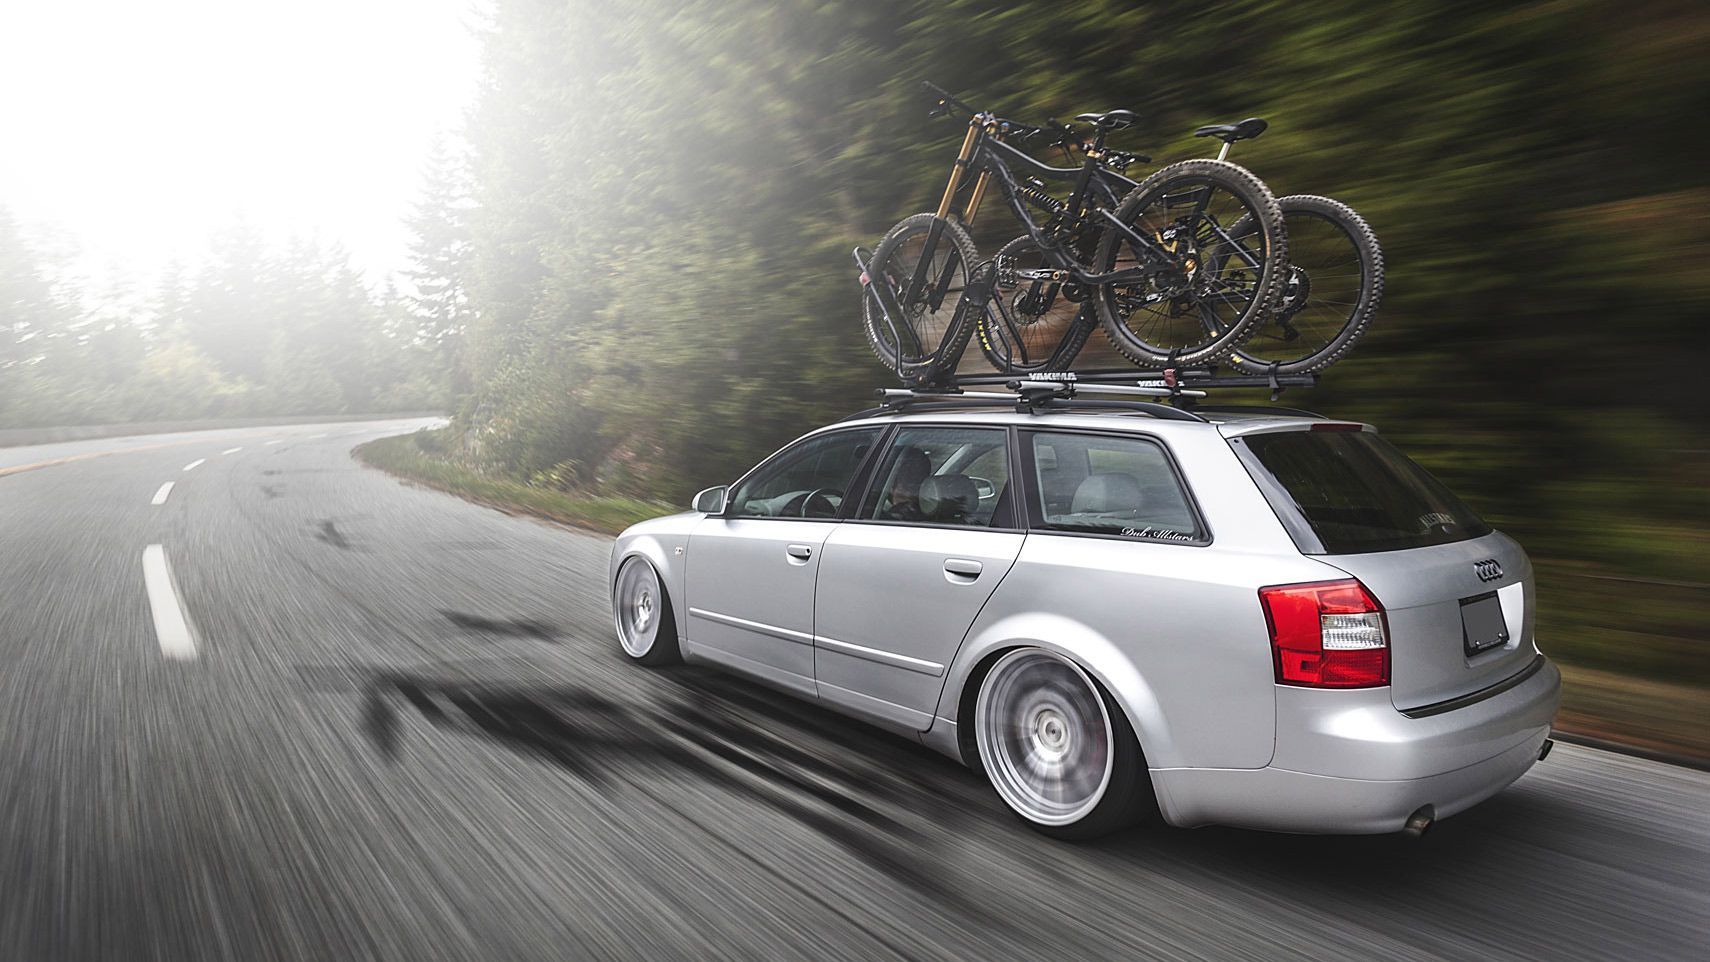 Audi B6 A4 Avant - Vancouver Automotive Car Photographer Jason Manchester